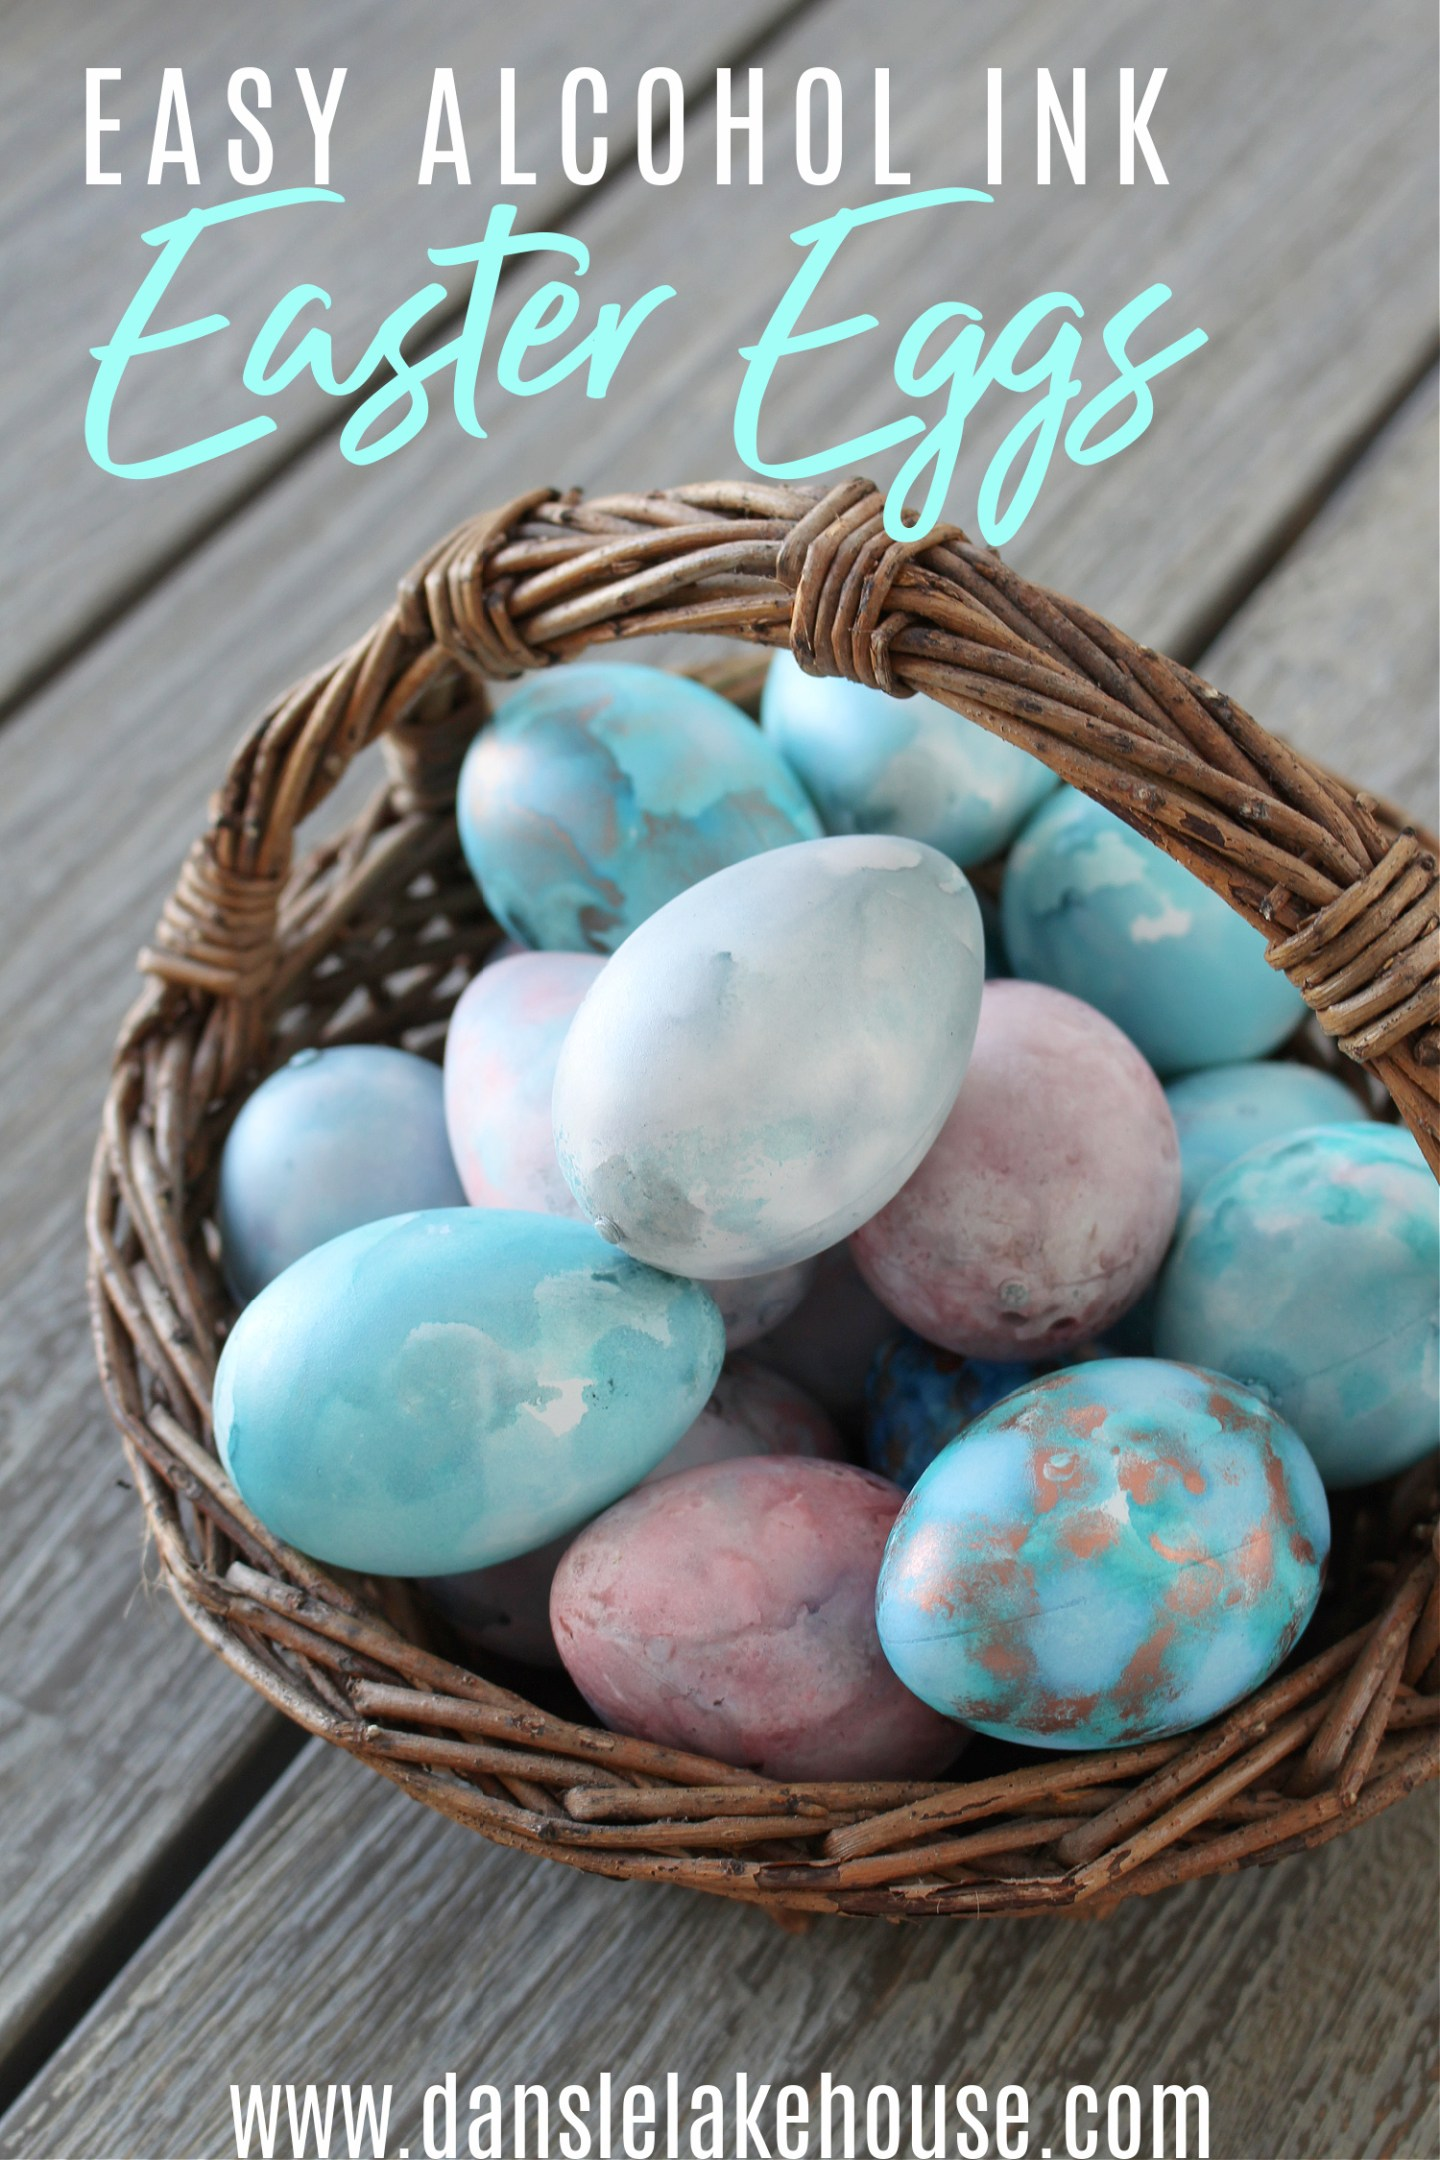 How to Make Alcohol Ink Easter Eggs